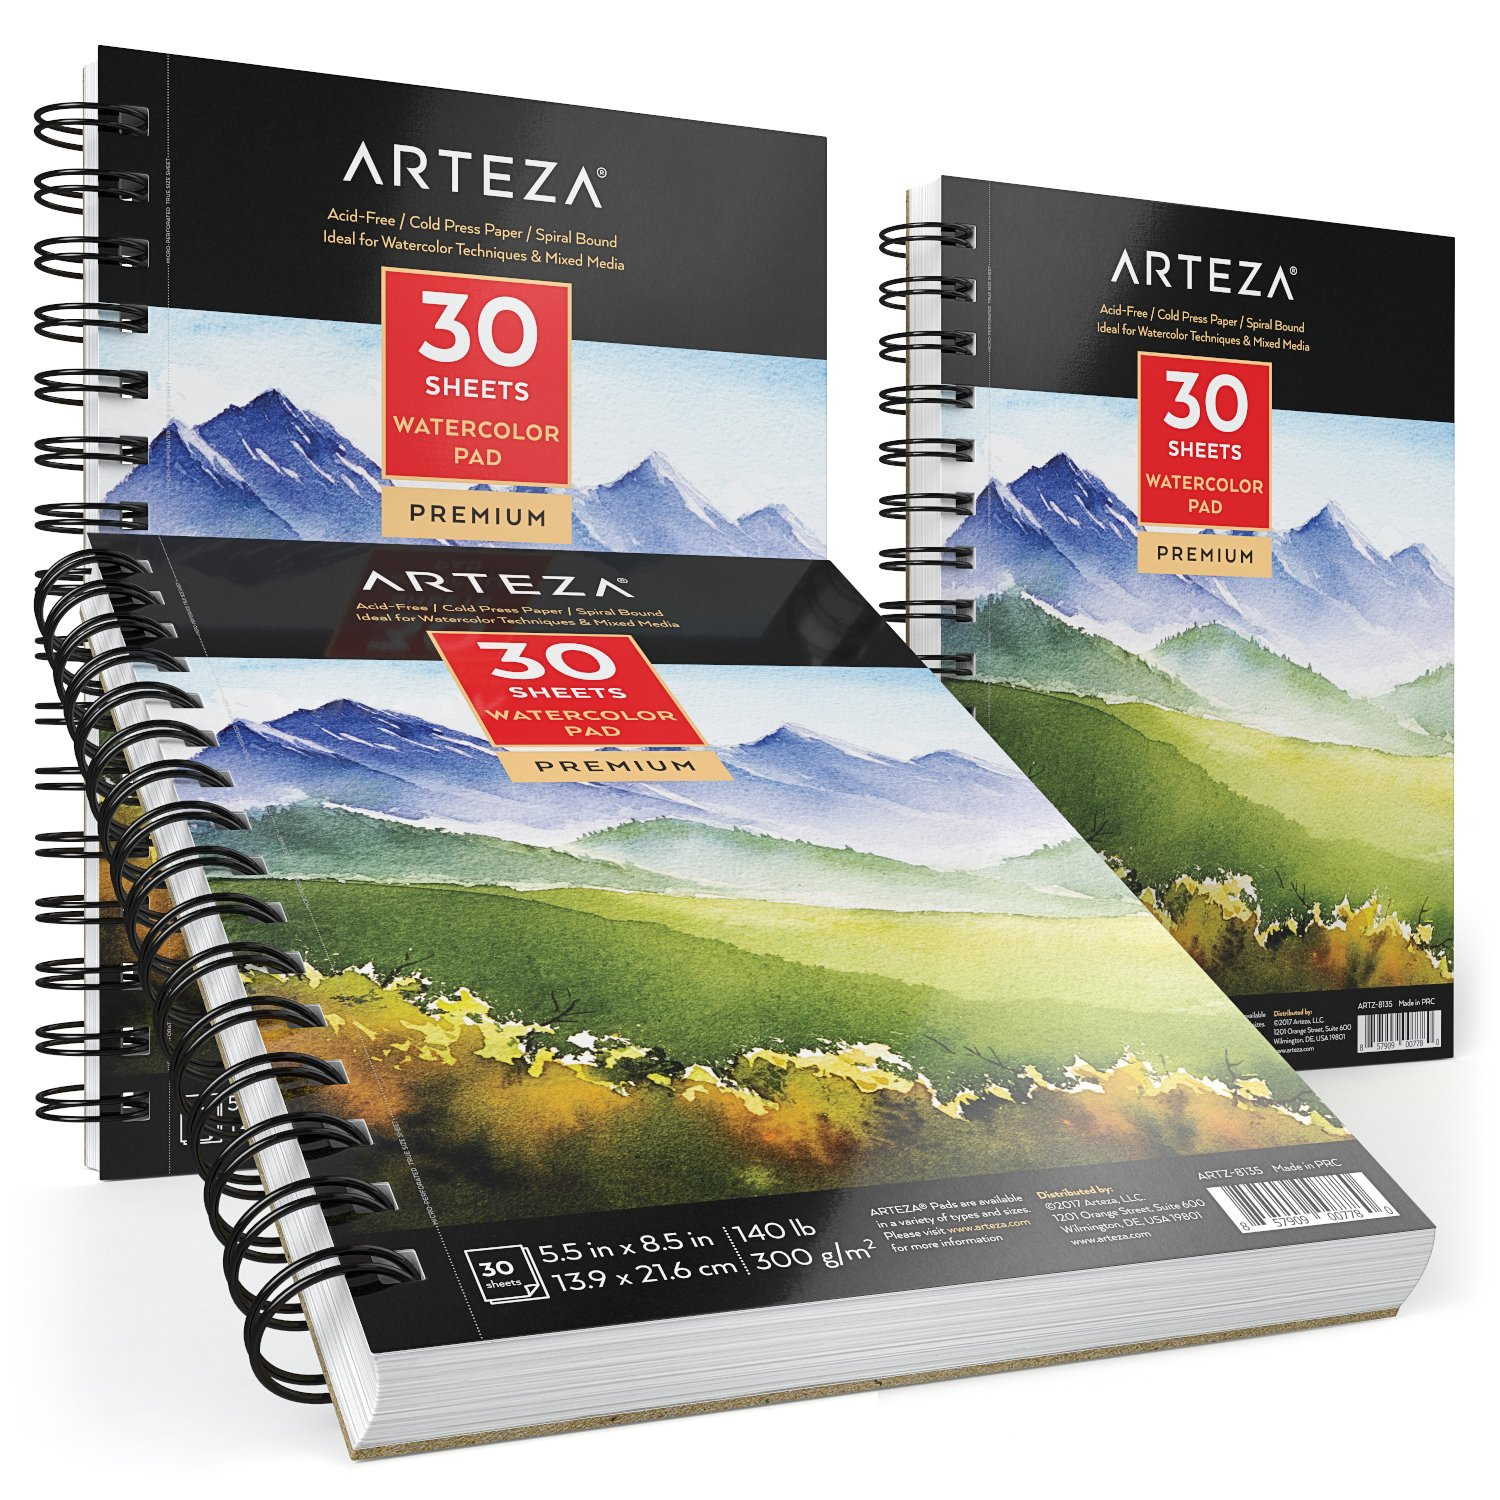 Arteza Watercolor Pad, 3 Pack, 5.5''X8.5'' Painting & Drawing Paper Sketchbooks, 90 Sheets Total, 140 lb./300gsm Cold Pressed Paper, Acid Free, Perfect for Wet, Dry & Mixed Media Painting by ARTEZA